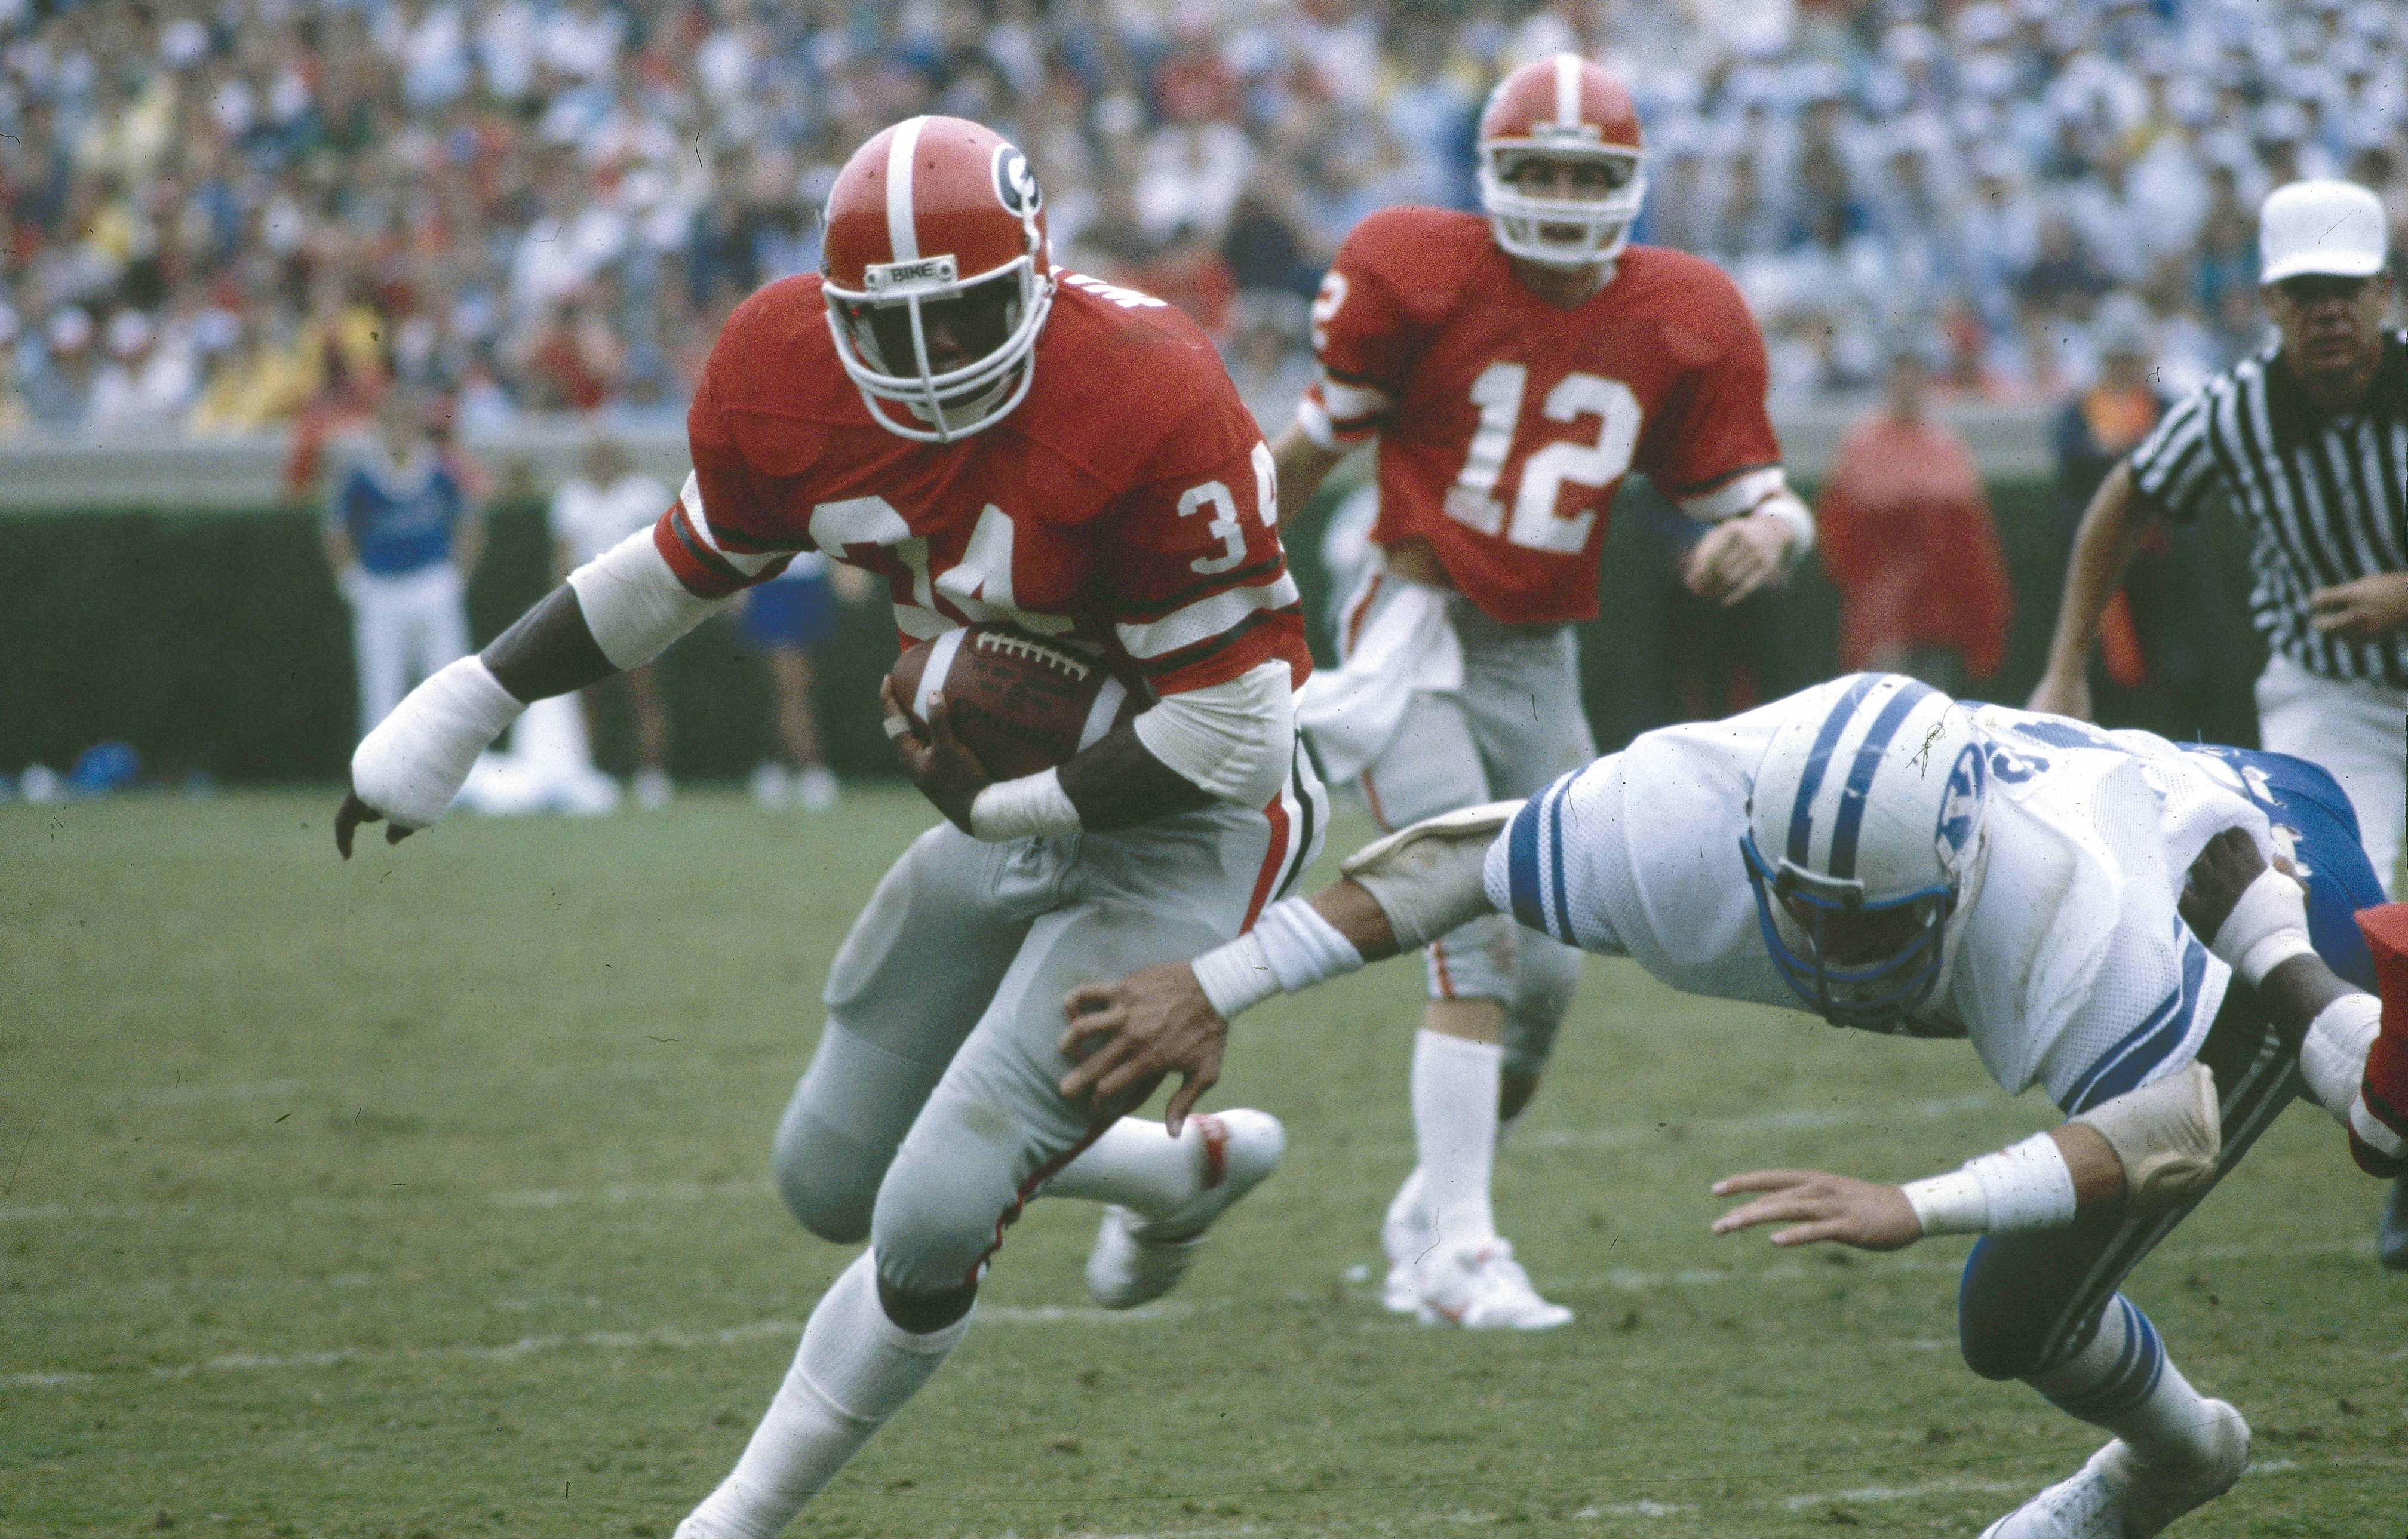 herschel walker Cbncom – herschel walker was one of the most powerful running backs in college and nfl history because of his combination of strength and speed he's one of the greatest in the game the 1982 heisman trophy winner spent 15 years in professional football but the side you may not know, is .